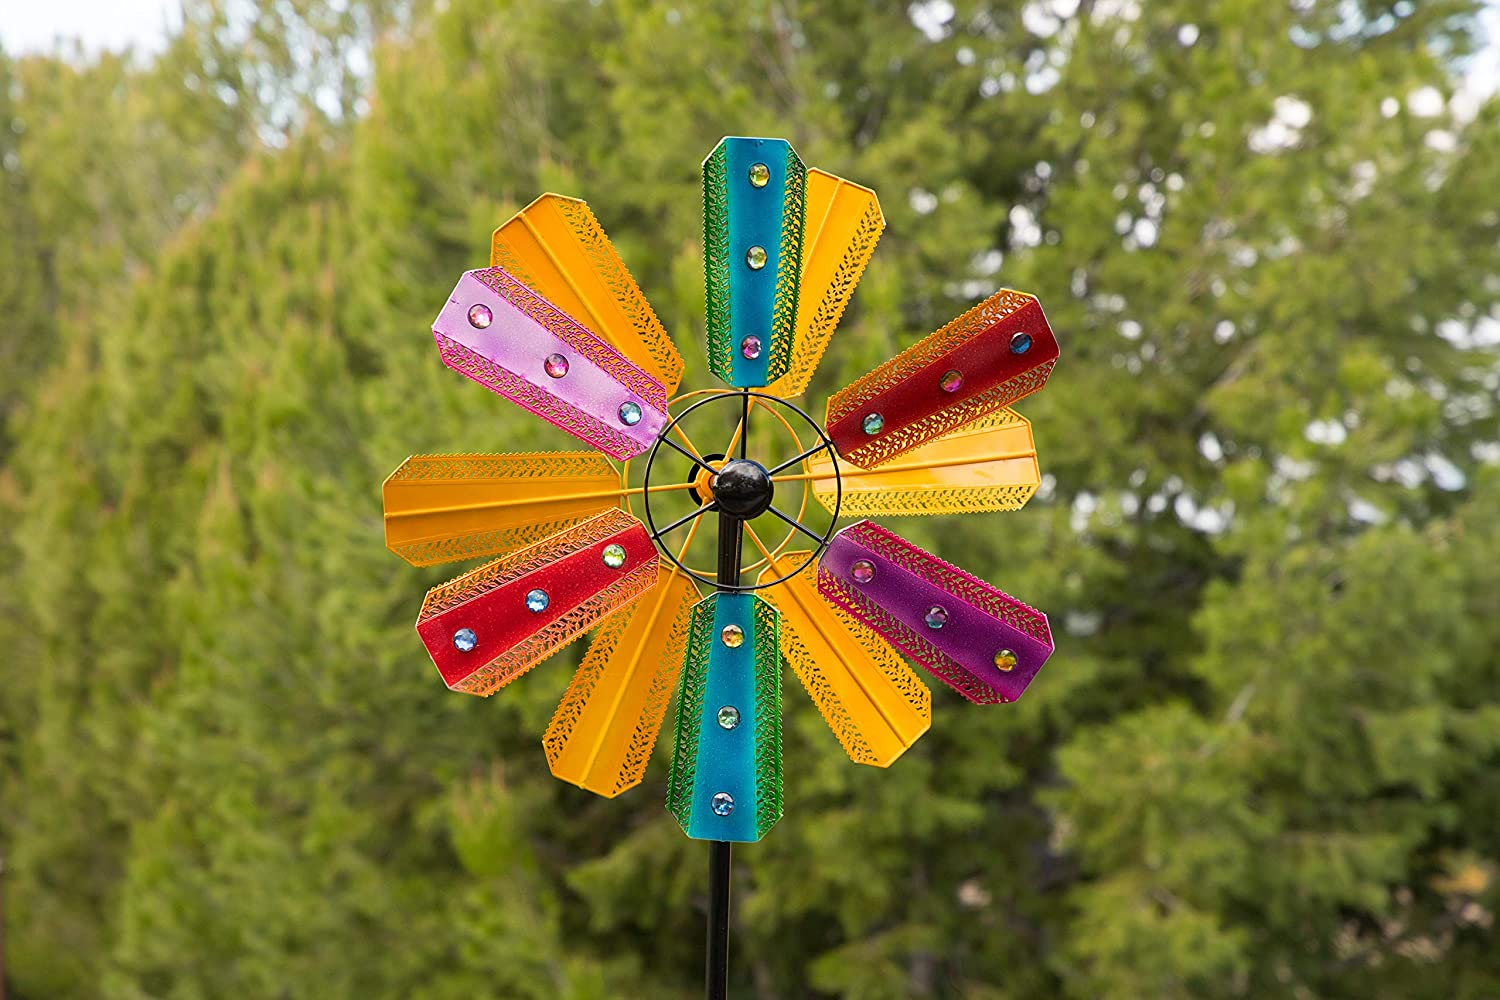 Alpine BVF234 Kinetic Wind Spinner Garden Stake w/Gems, 86 Inch Tall Multi-Color